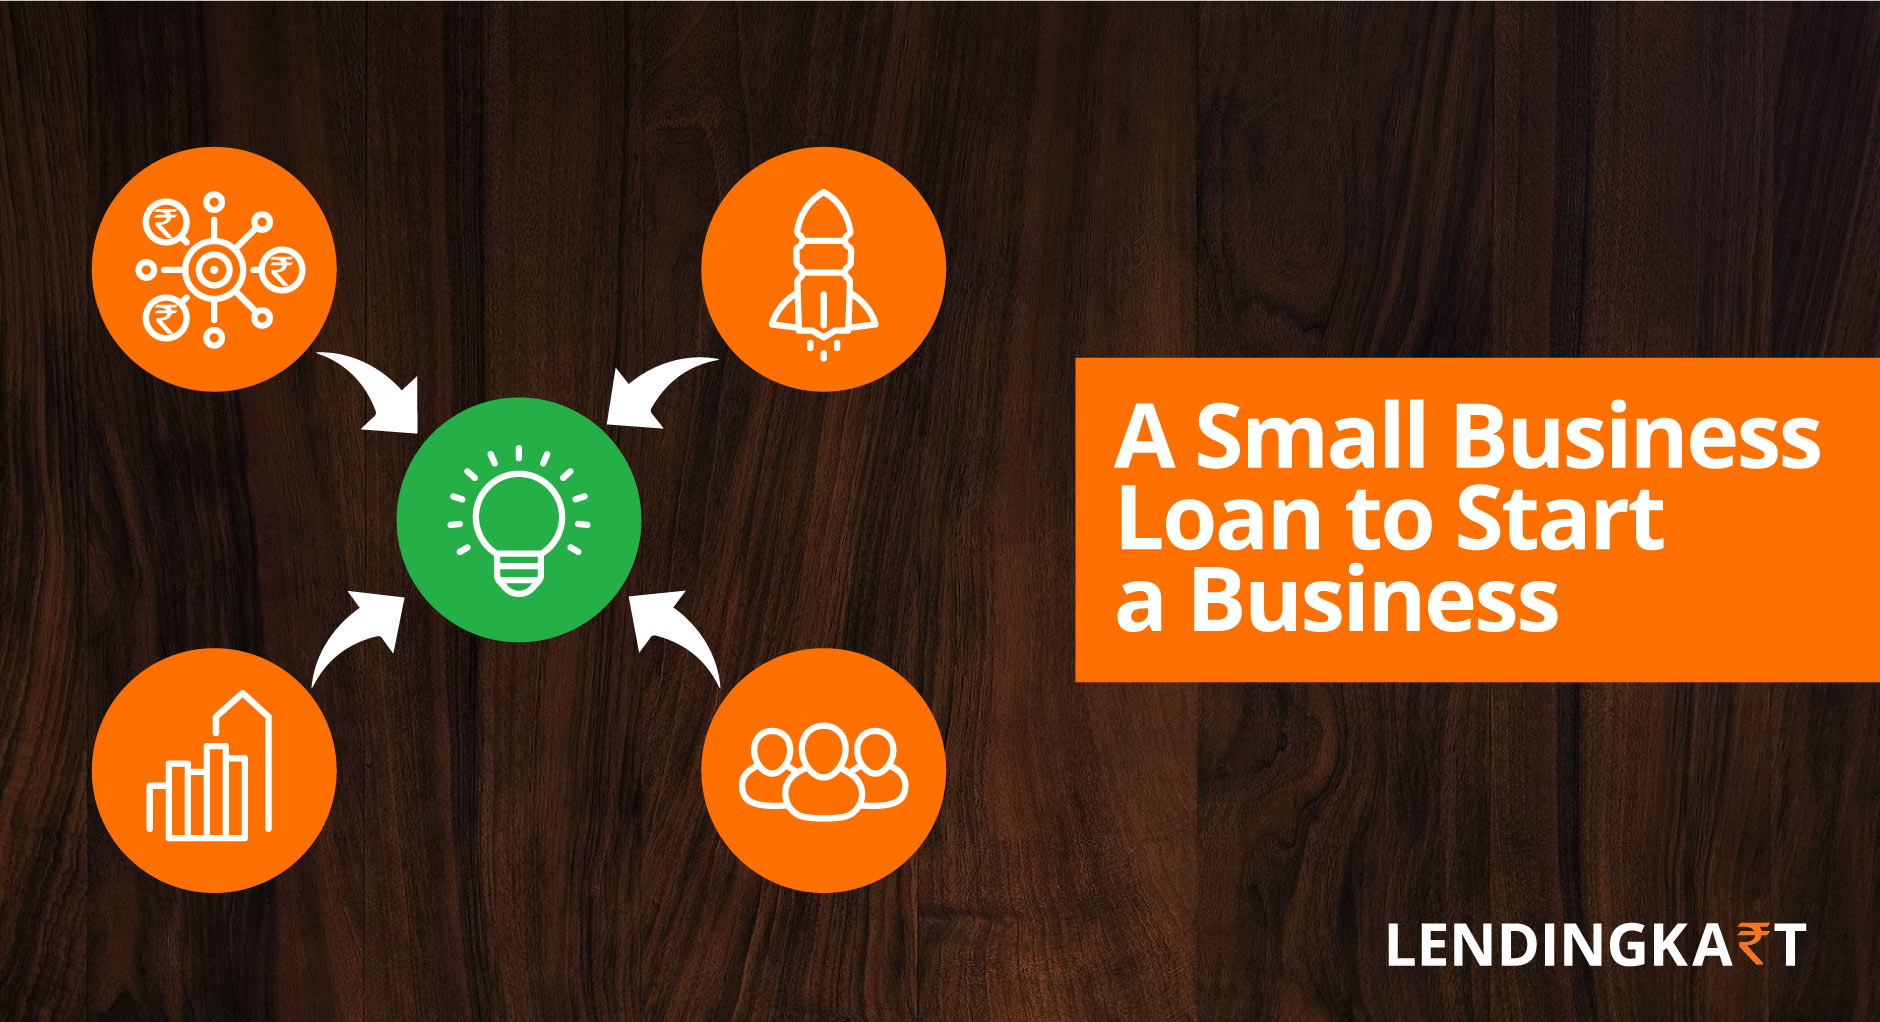 How To Get A Business Loan >> How To Get A Small Business Loan For A Startup New Business